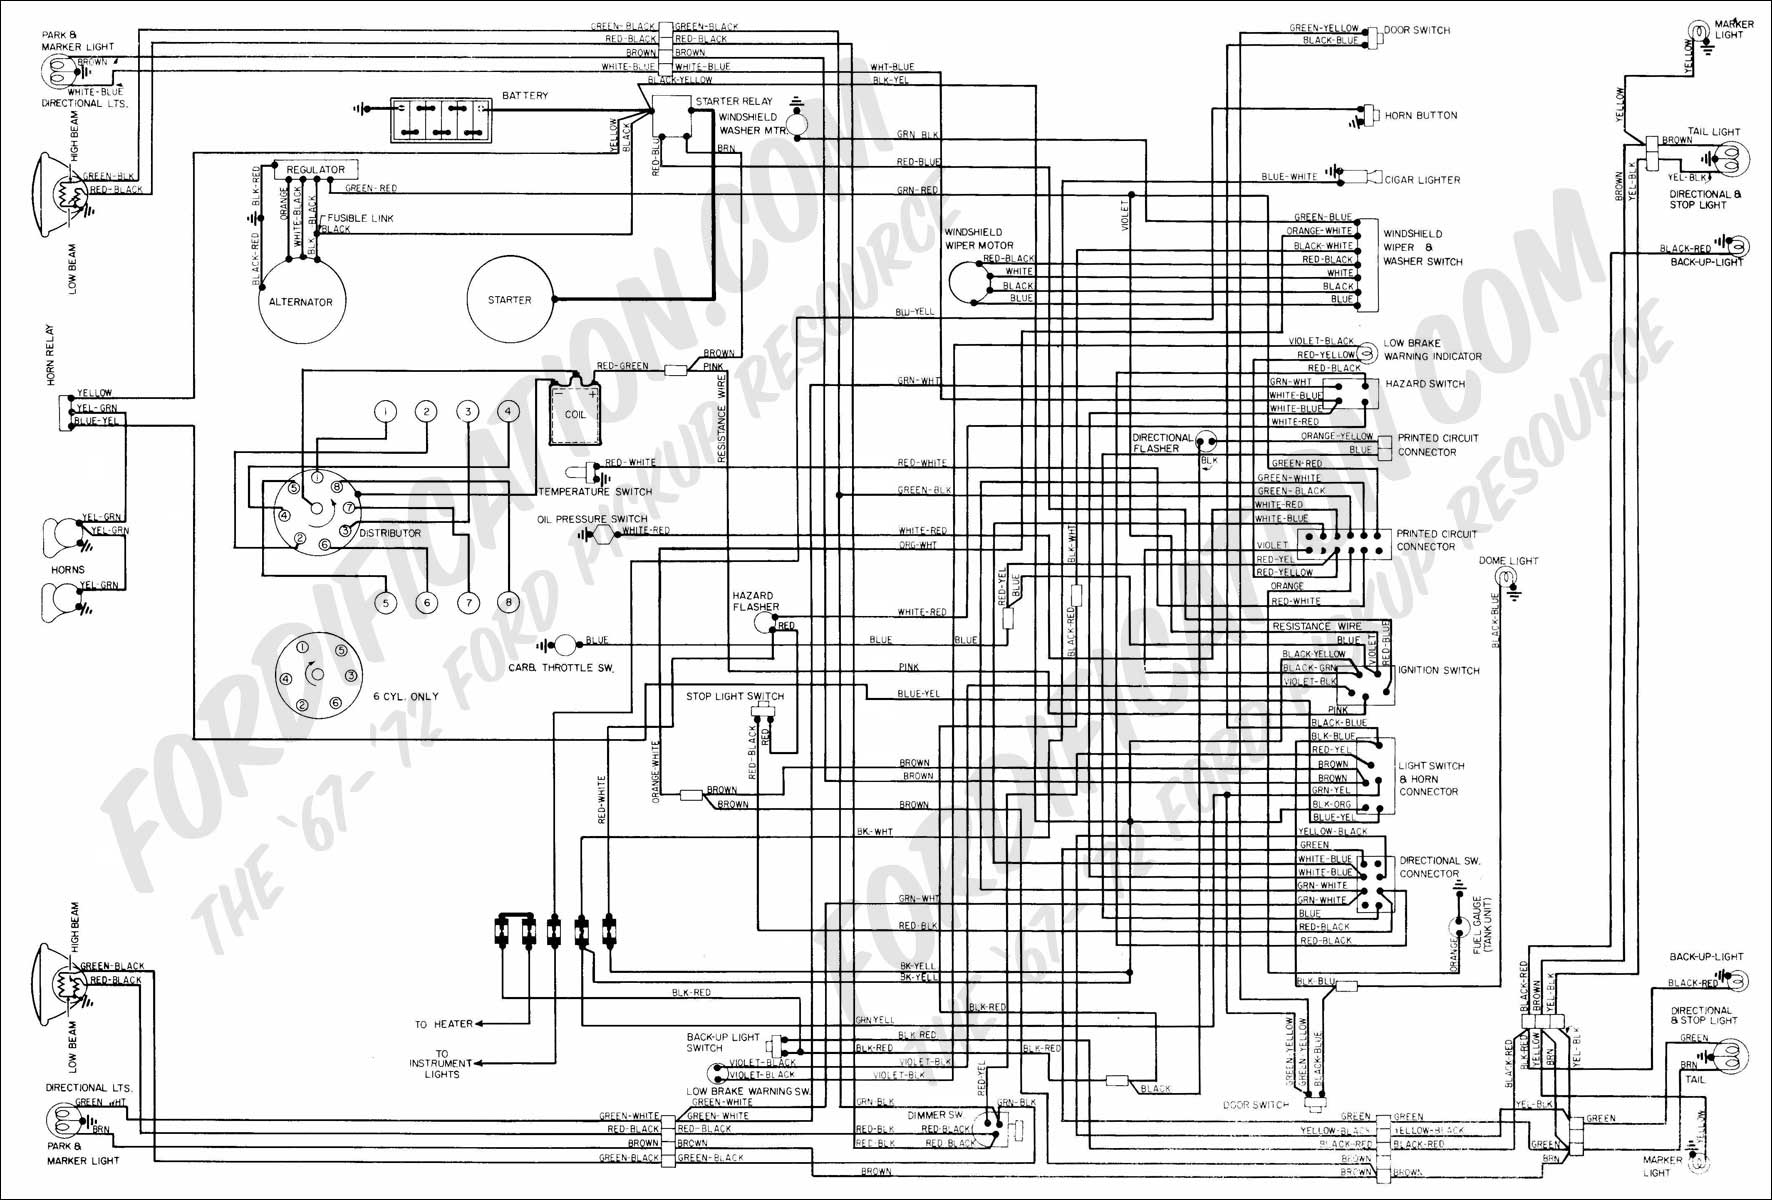 66 ford ignition system wiring diagram pdf with 2001 Ford F150 Ignition Wiring Diagram on 66 Mustang 2 Speed Wiper Wiring Diagram besides Installing 20Gauges together with 1966 Mustang Wiring Diagram Pdf as well Vanagon Radio Wiring Diagram Besides Vw Turn Signal besides 108079 Wiring Question.